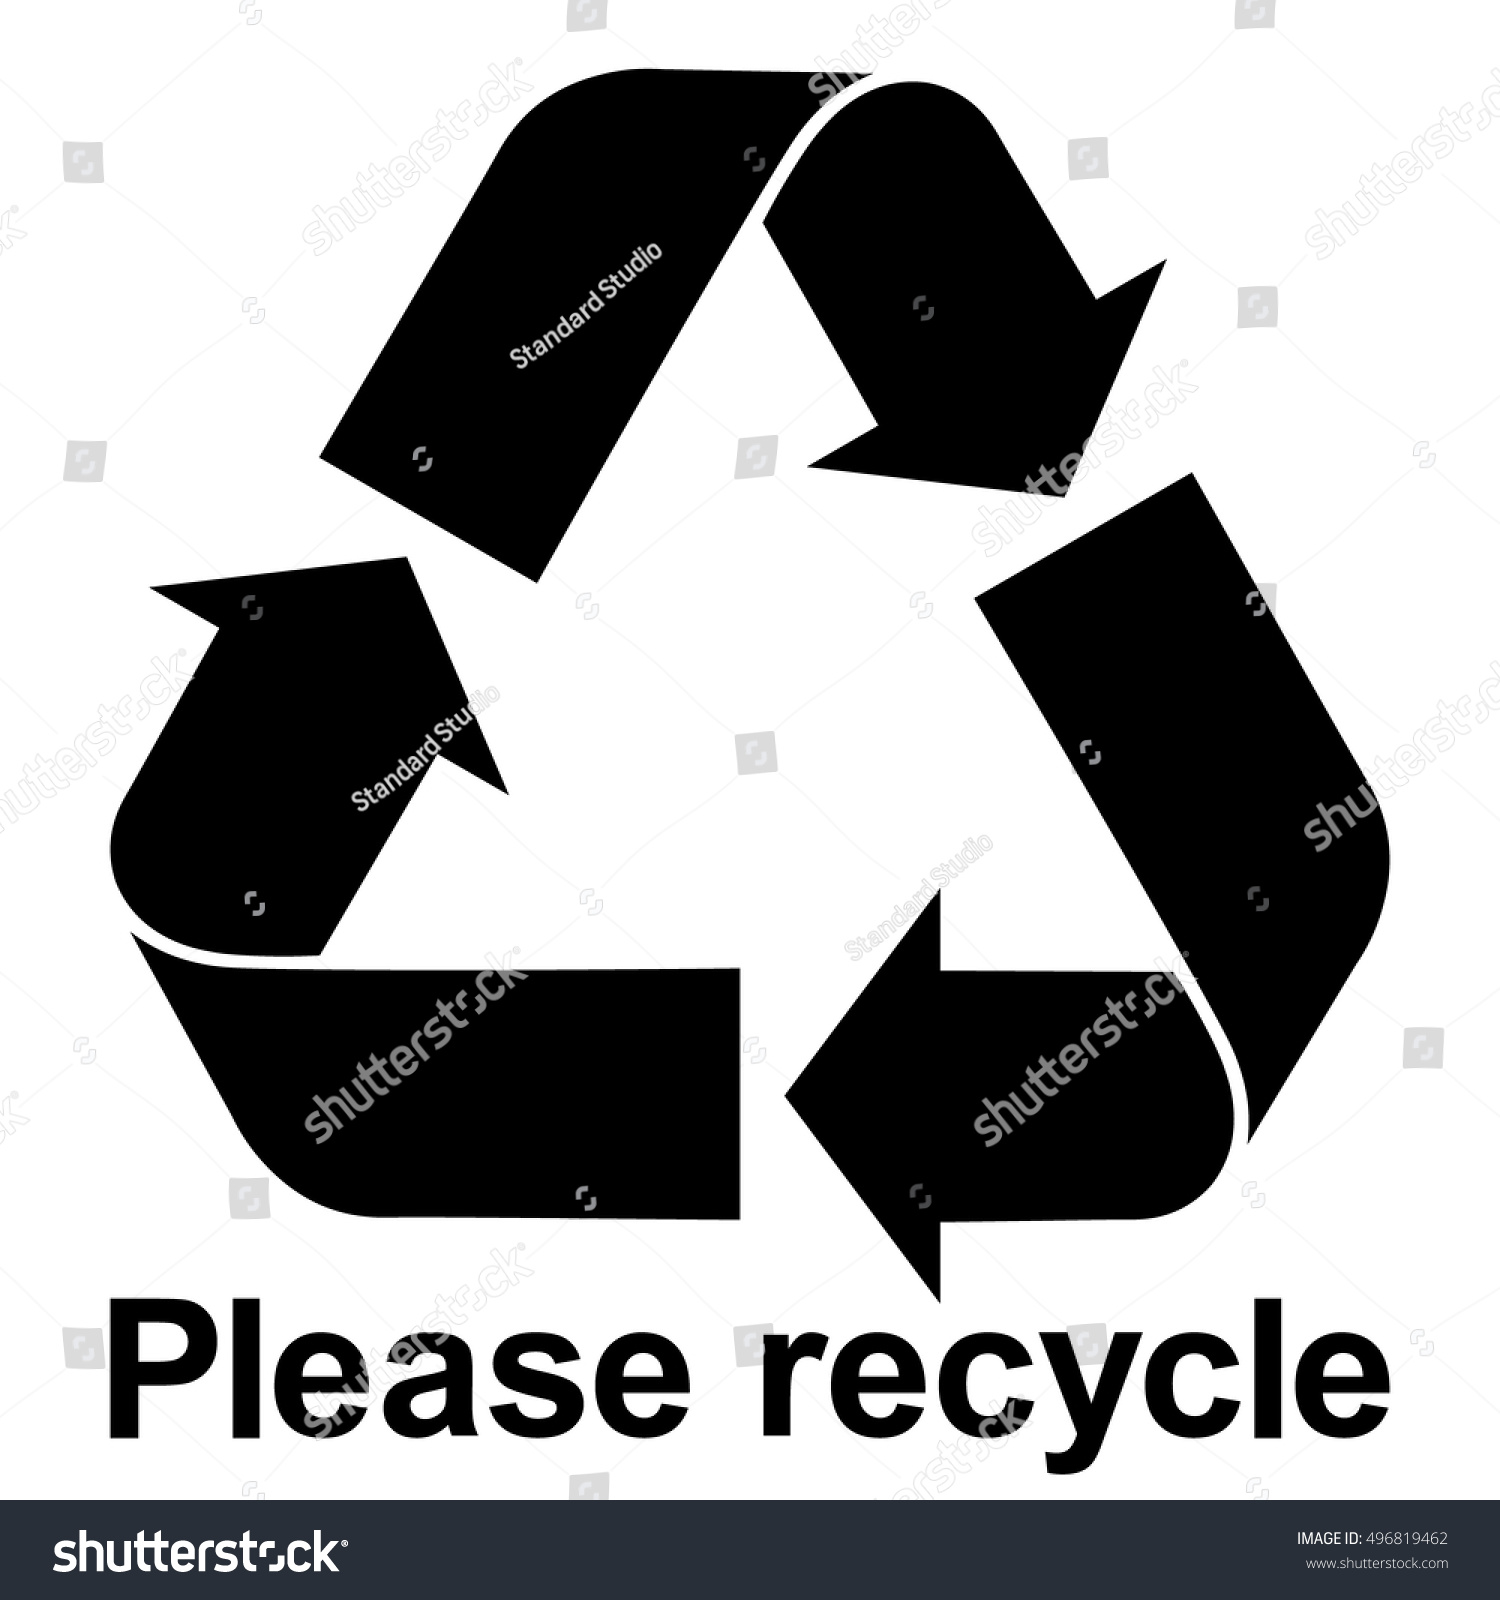 Black Recycle Symbol Text Please Recycle Stock Photo Photo Vector